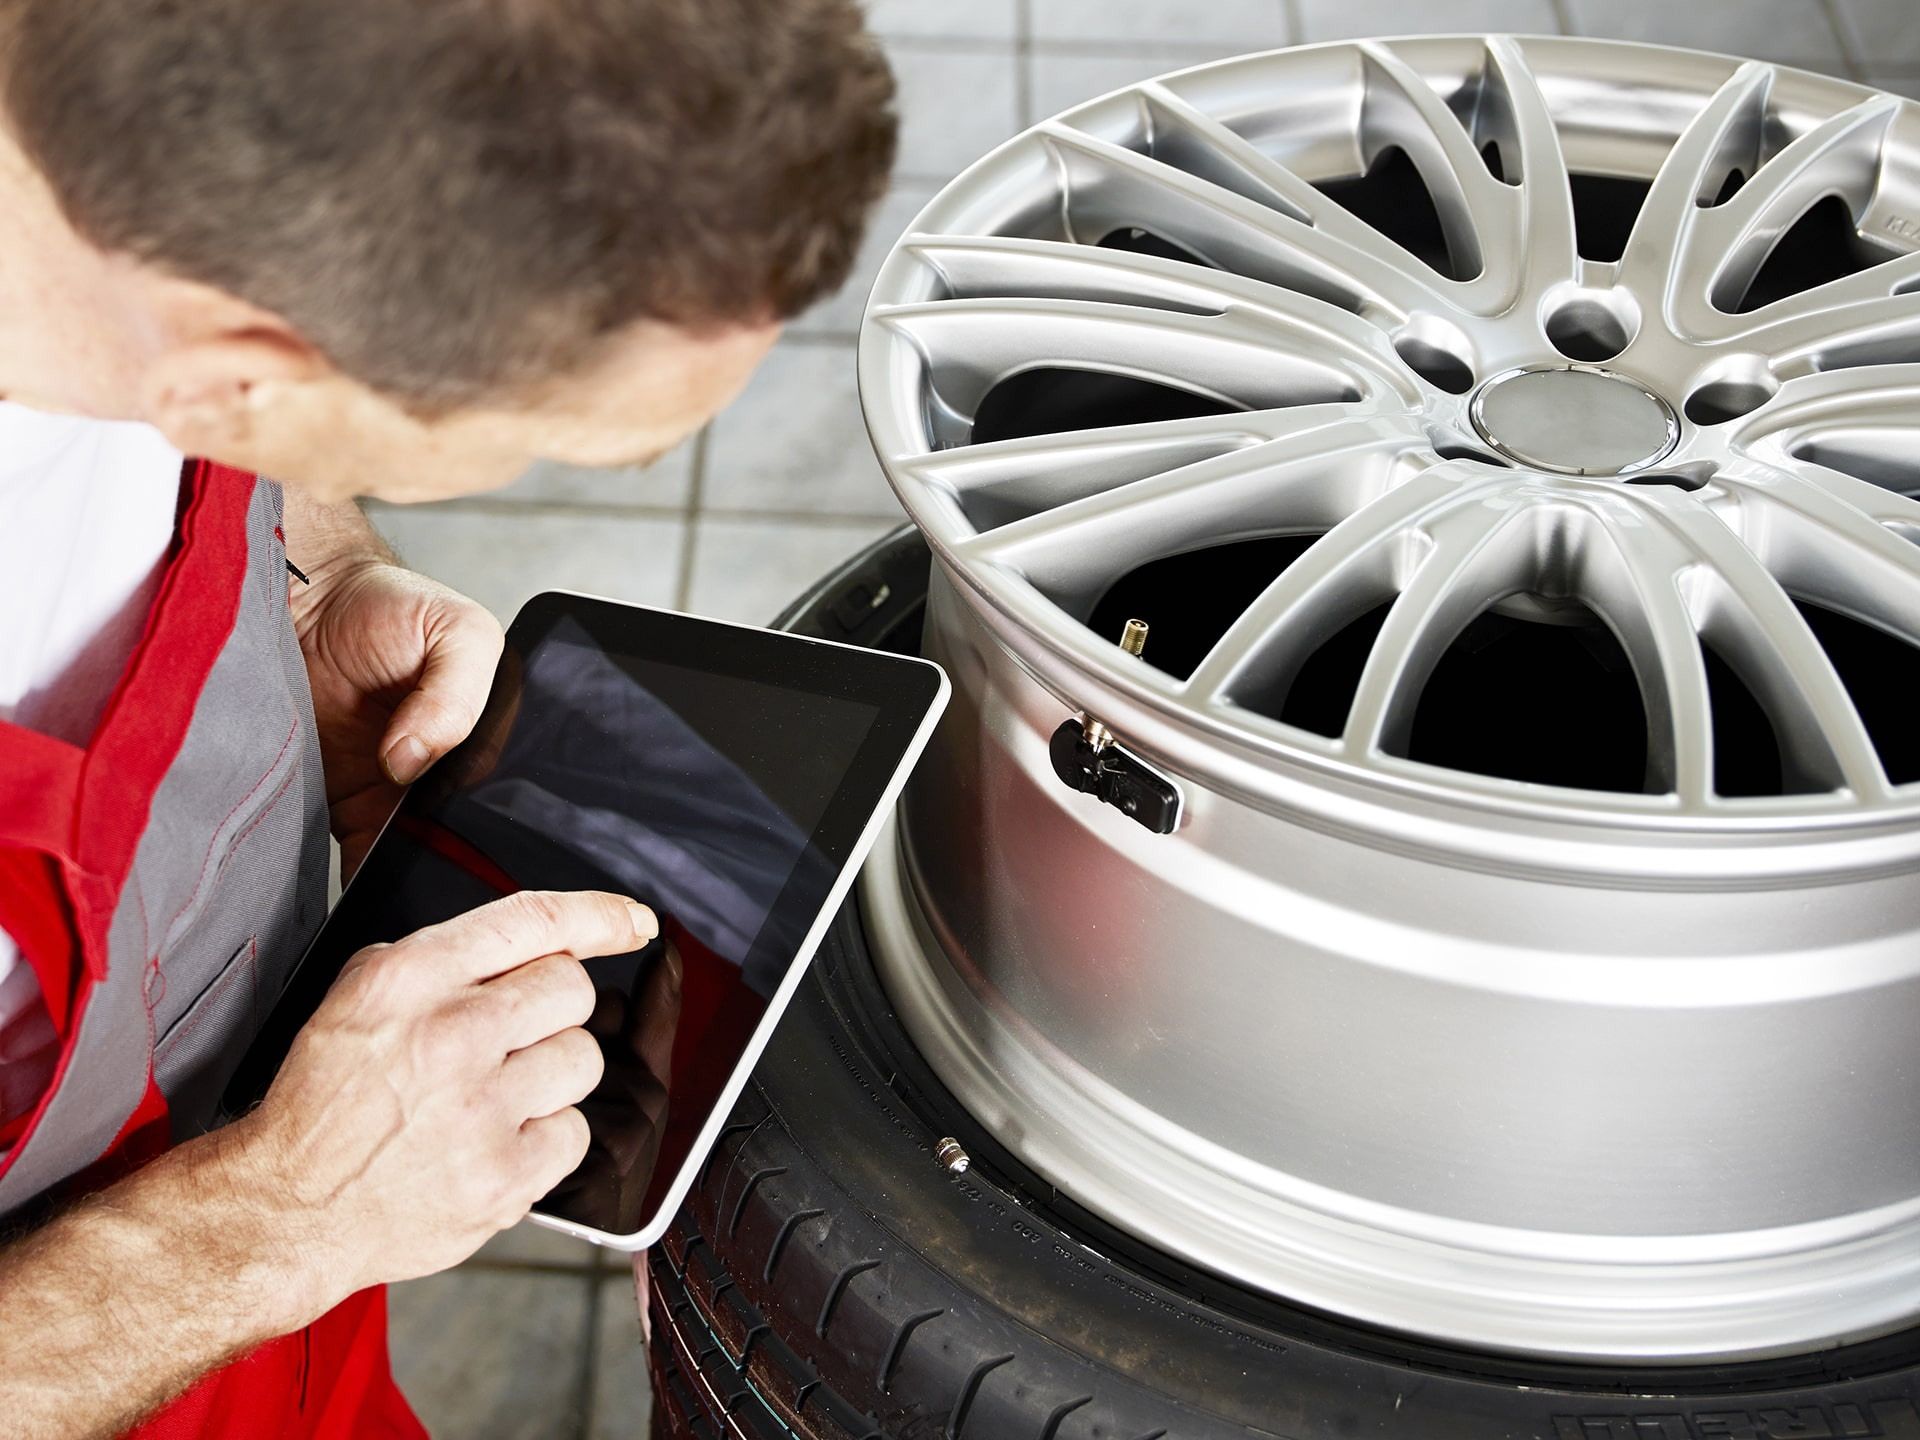 TPMS Manager Mobile